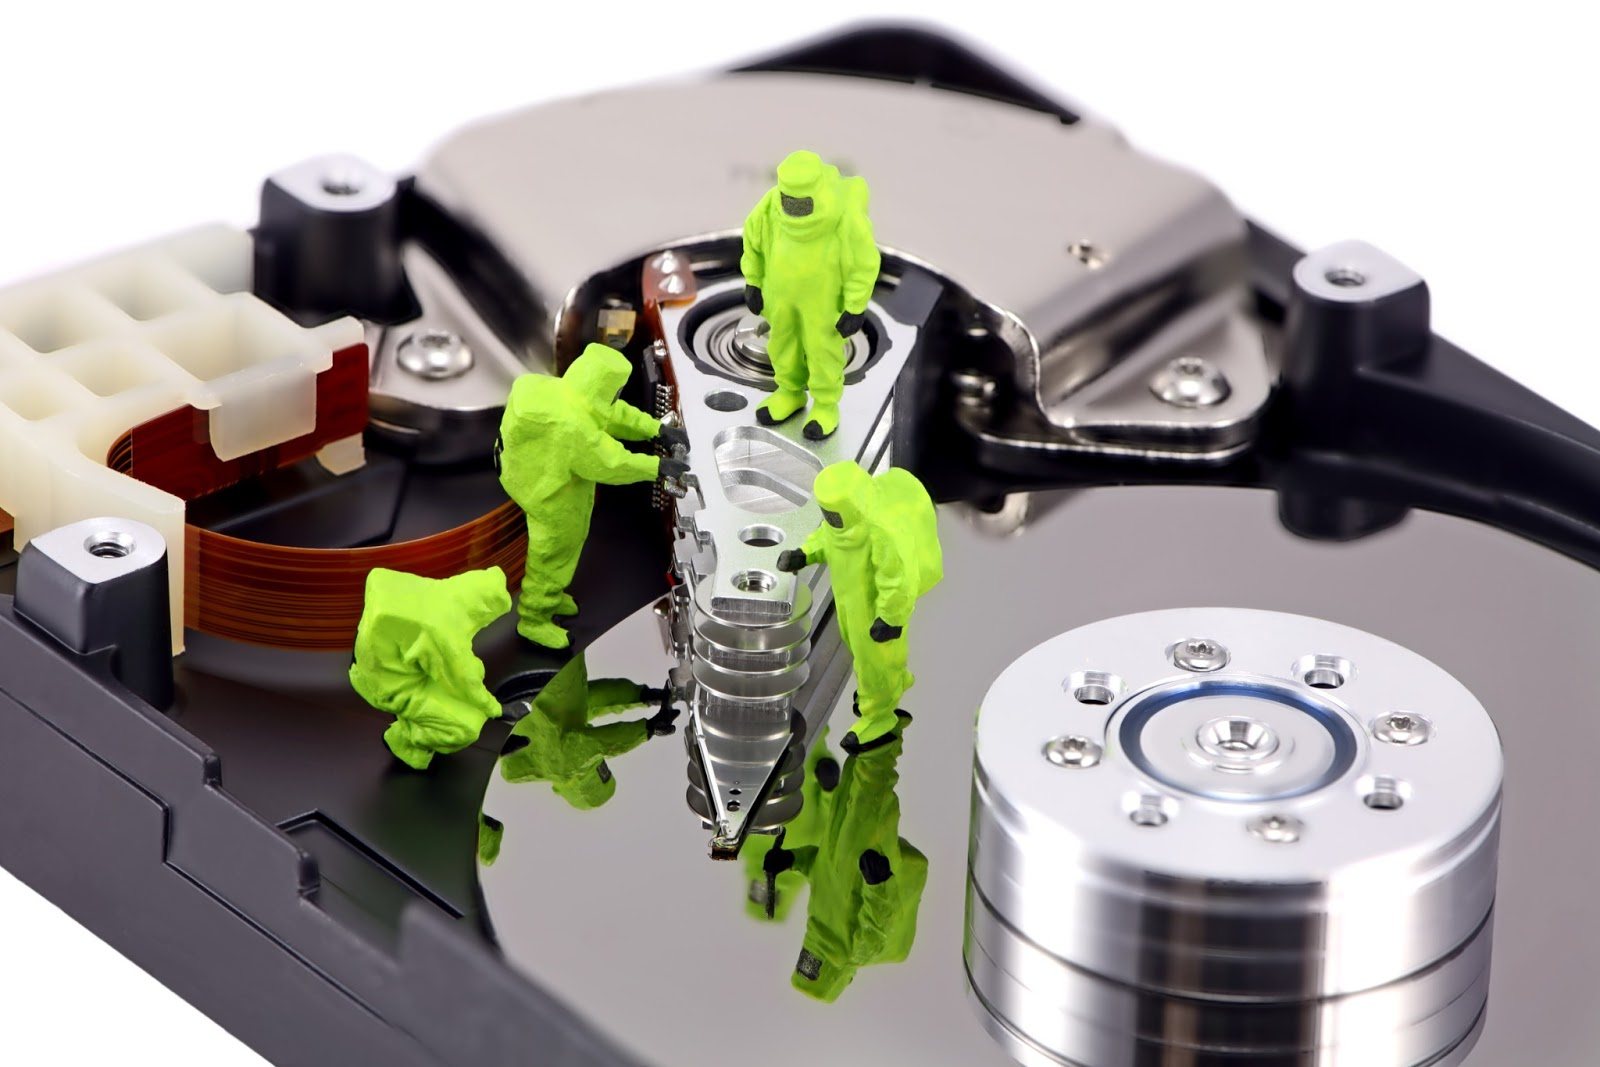 Why My Data Hard Drive Errors Didn't Affect Me